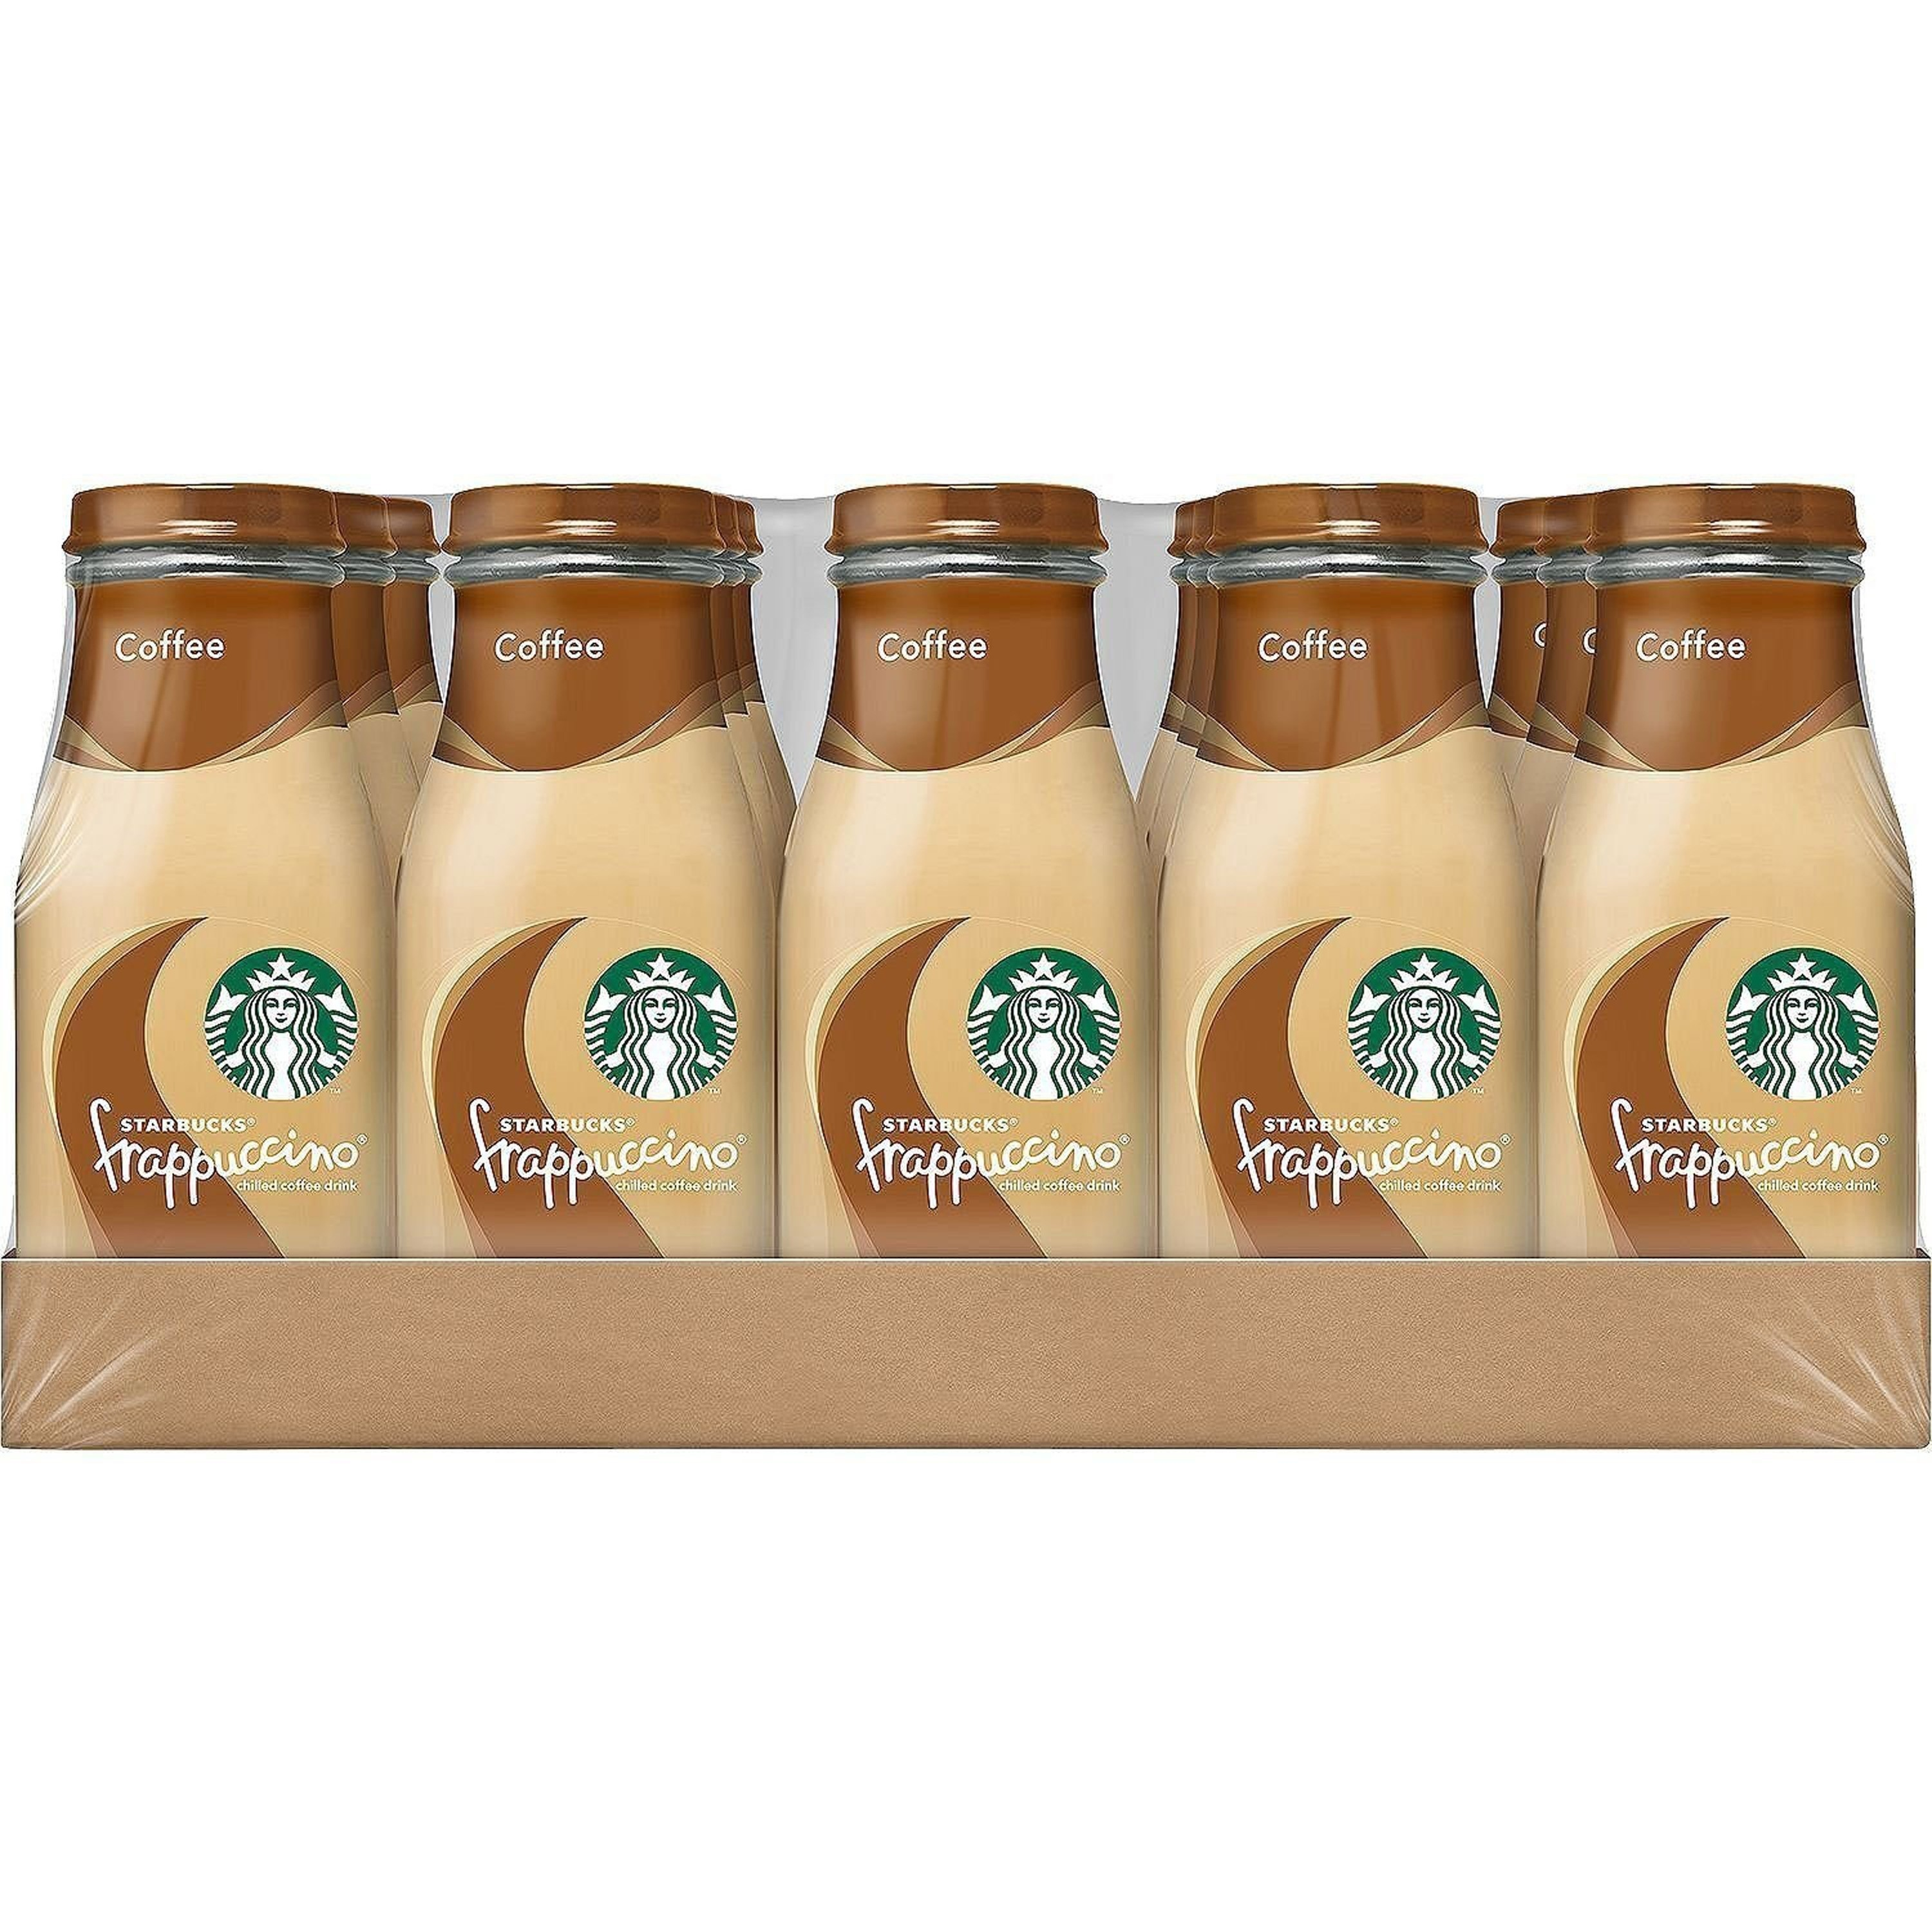 (15 Bottles) Starbucks Frappuccino Coffee with Caramel, 9.5 Fl Oz